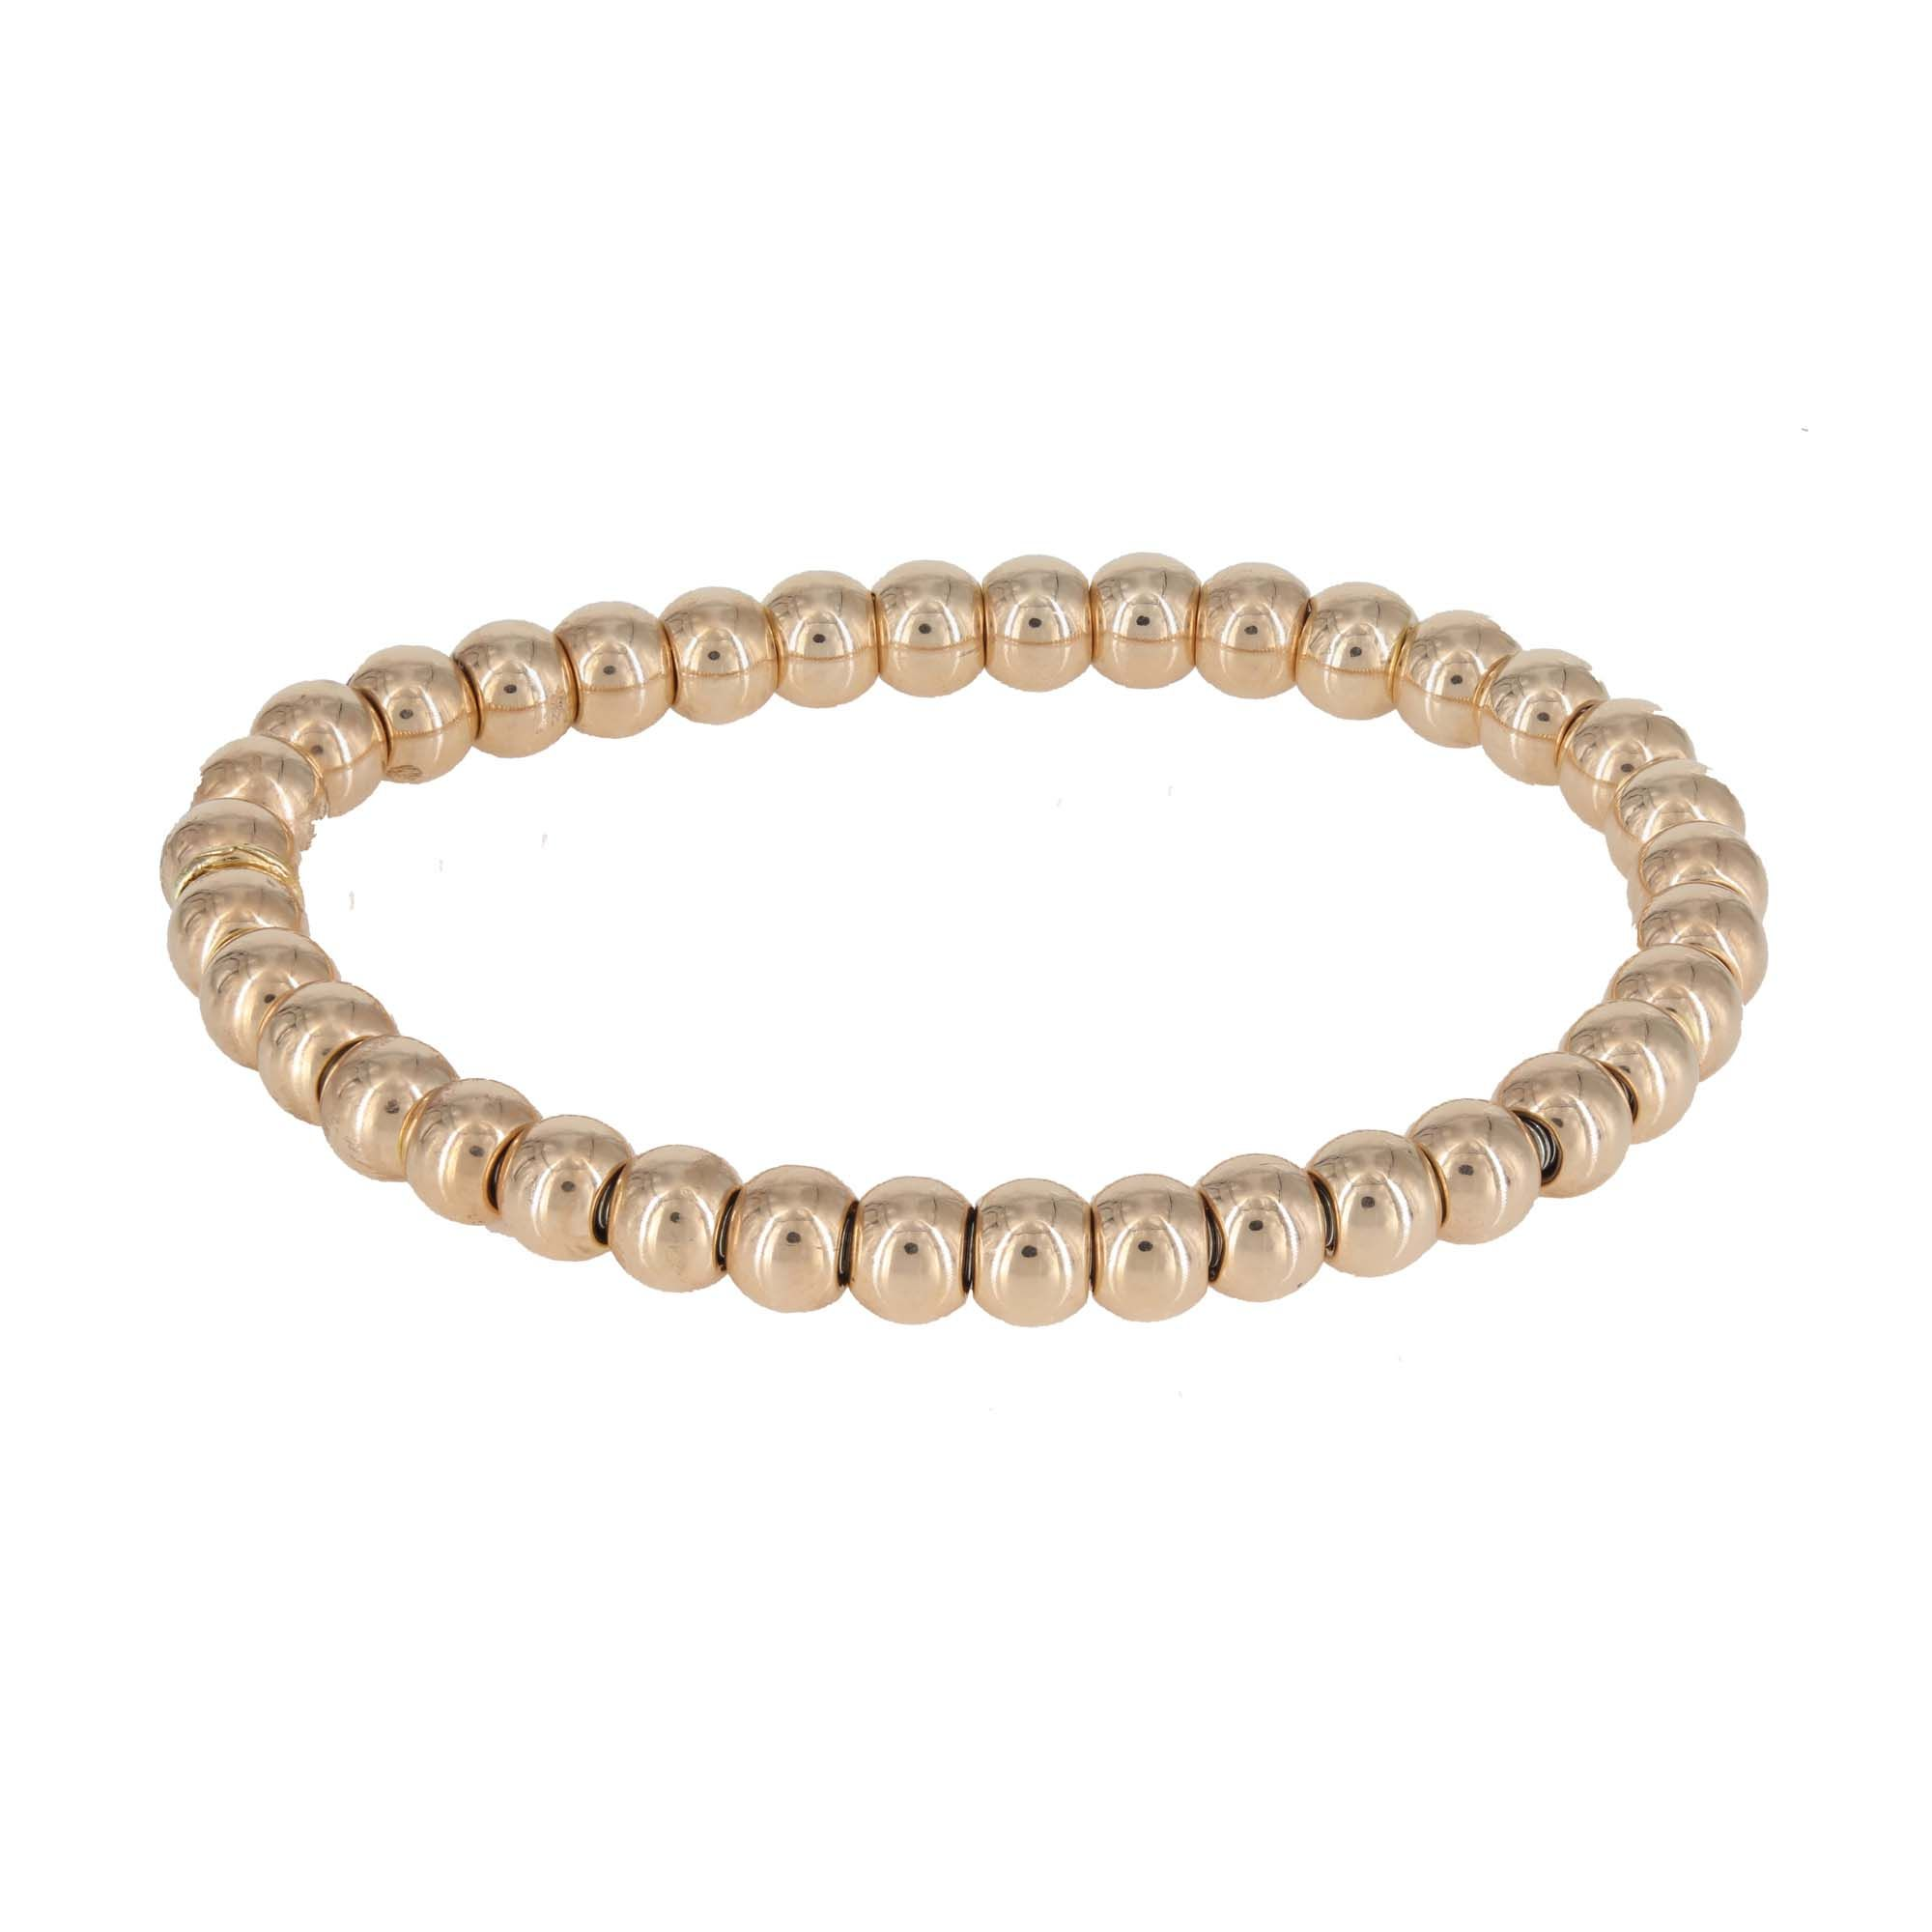 London Collection 18k Rose Gold Stretch